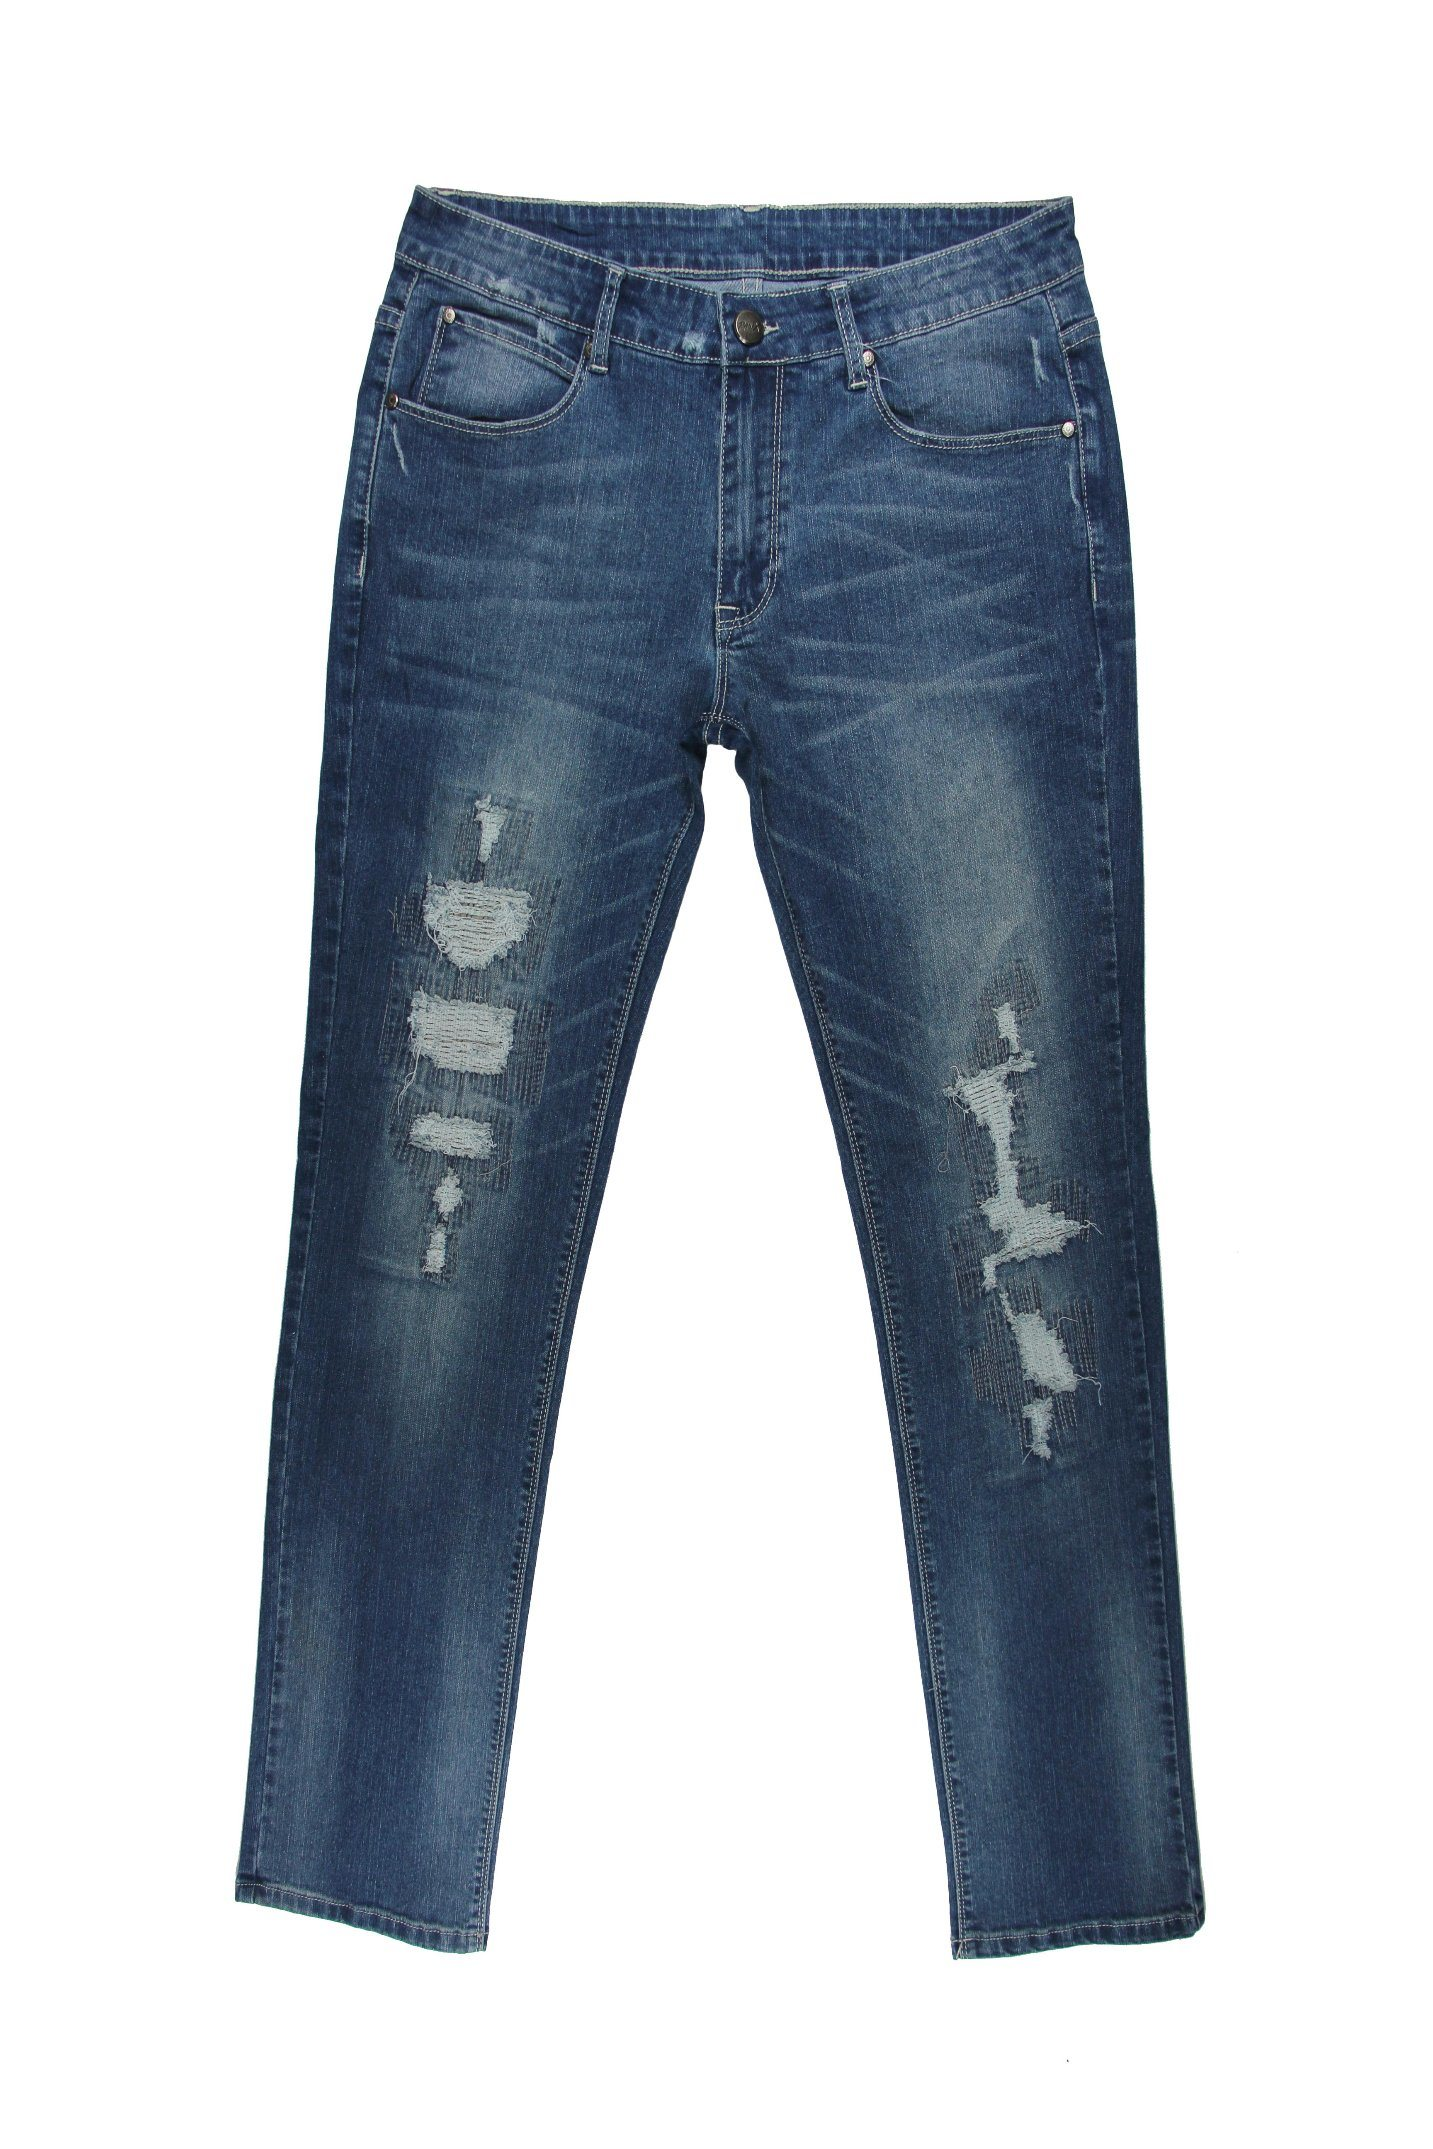 Good Quality Garment Factory of Men′s Denim (MYX14)